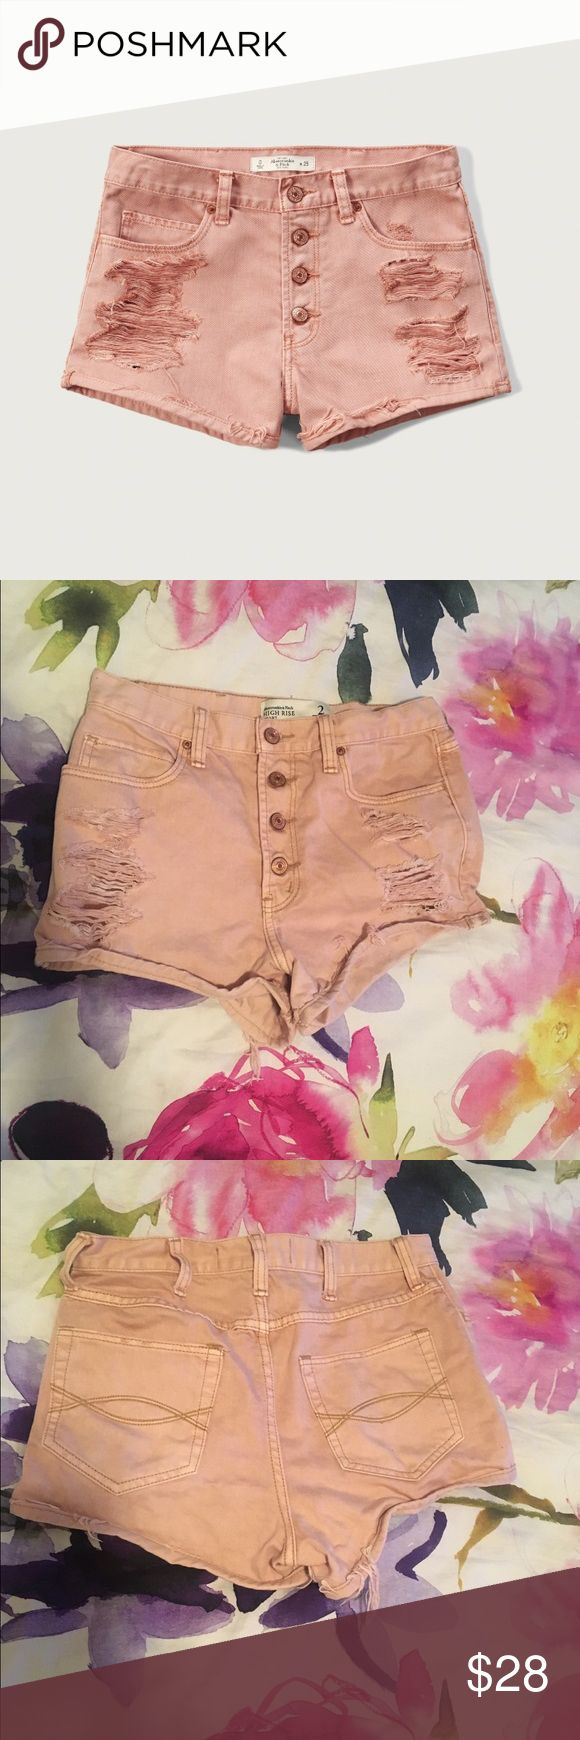 """Abercrombie & Fitch High-Rise shorts BRAND NEW w/o tags - NEVER WORN! Cute high rise denim shorts 2"""" in length. Salmon color. Love these & very flattering. Abercrombie & Fitch Shorts Jean Shorts"""